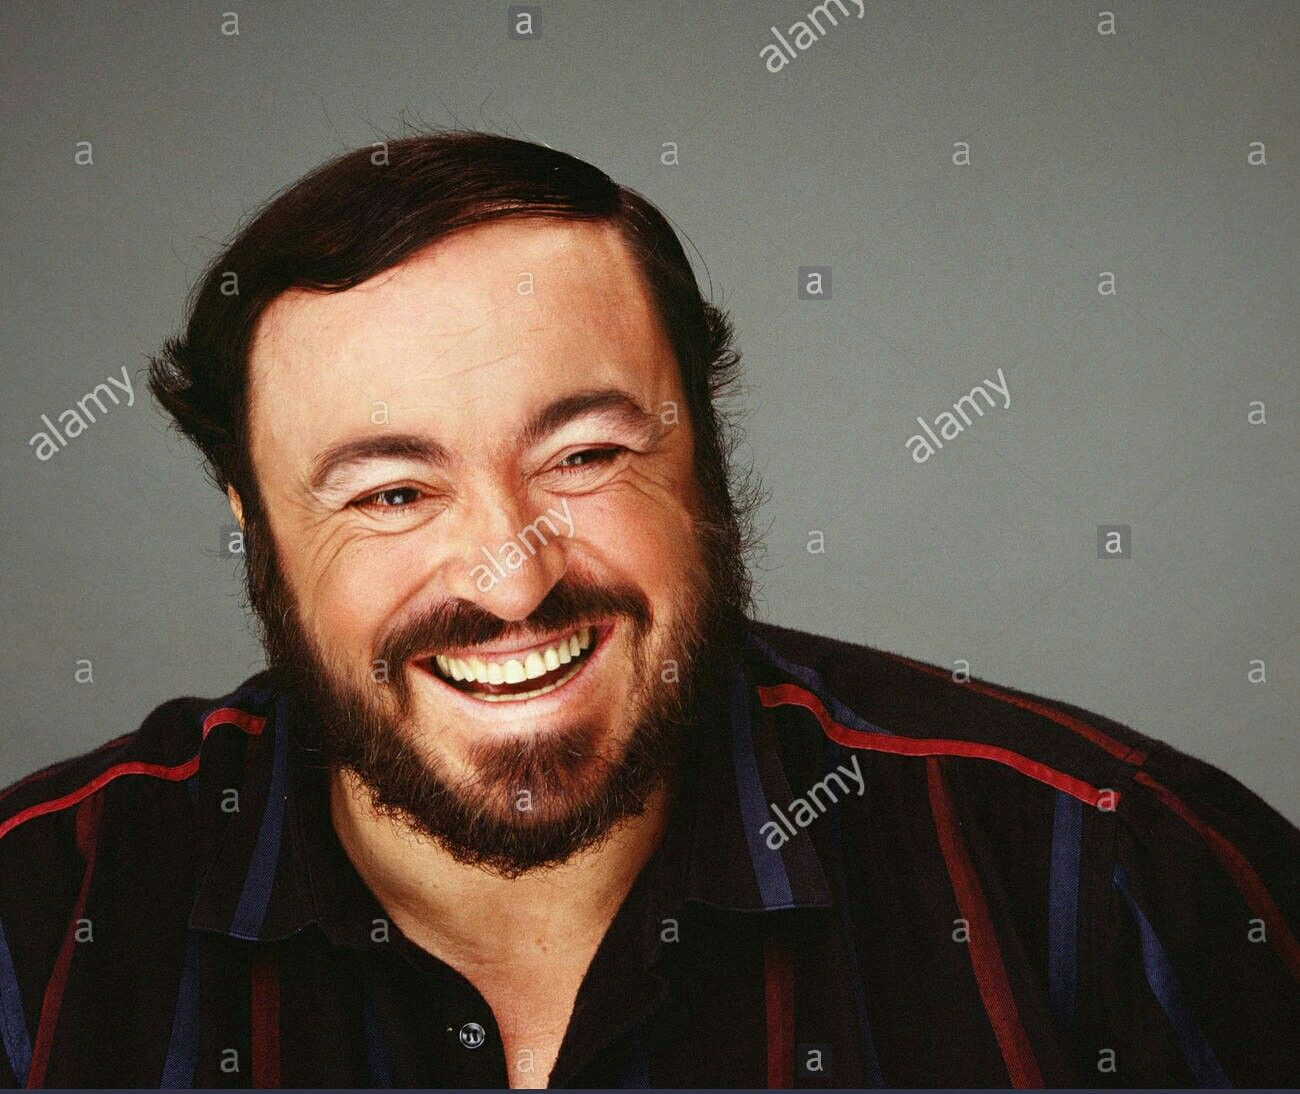 The Man Who Never Losing The Smile Of His Face Luciano Pavarotti Opera Singers Singer People